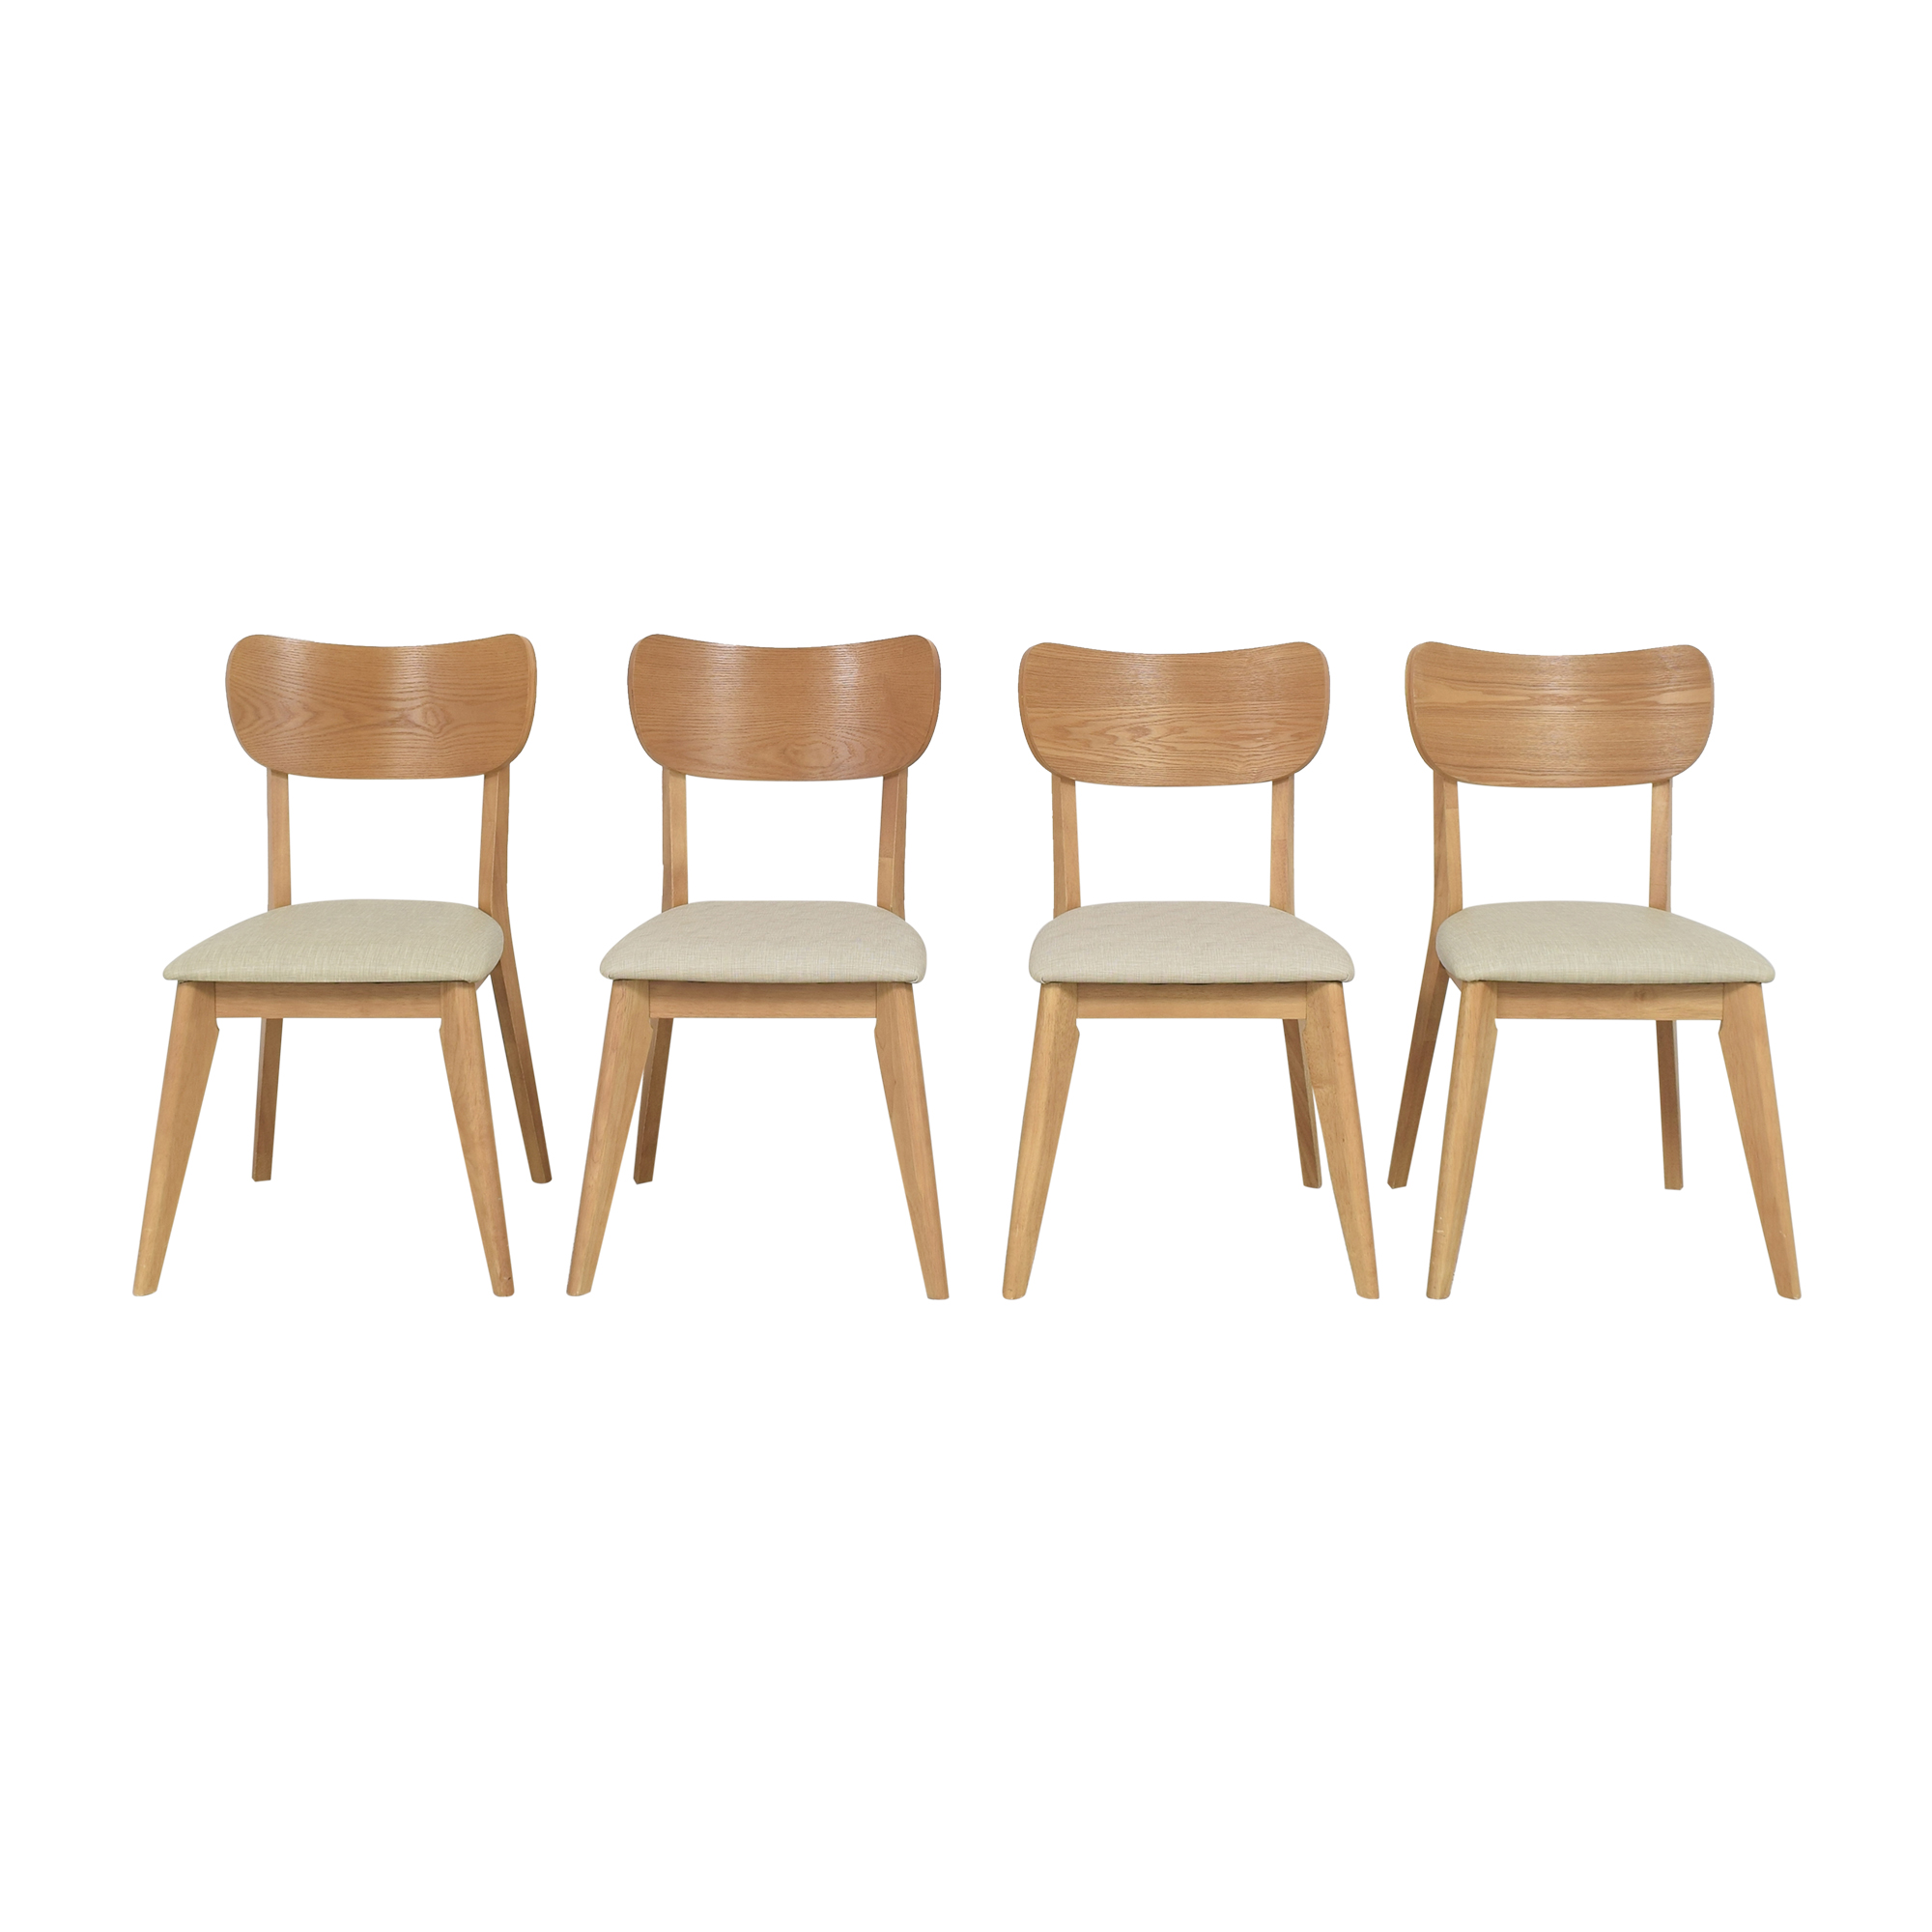 Mid-Century Modern Style Dining Chairs ma